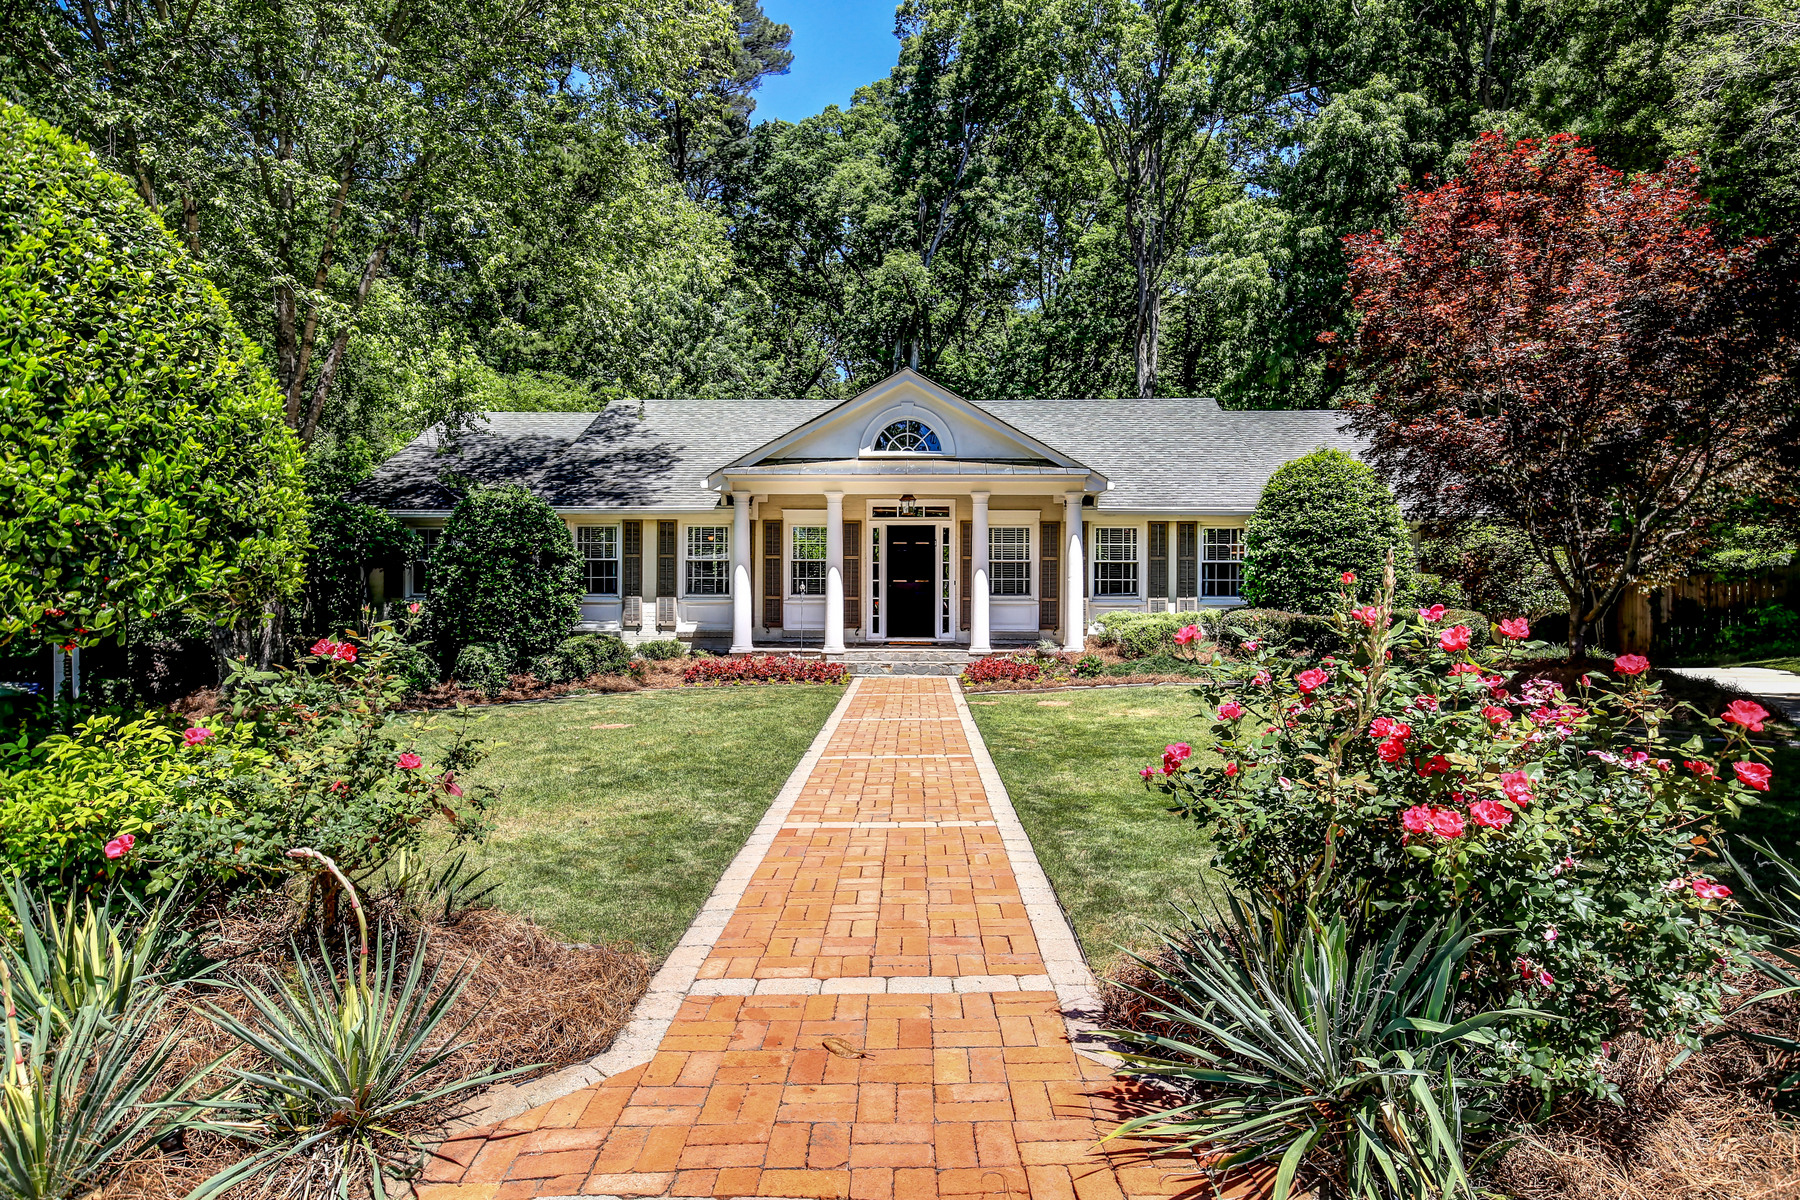 Single Family Home for Sale at A Wooded Surprise In Garden Hills 2548 Sharondale Court NE Garden Hills, Atlanta, Georgia, 30305 United States